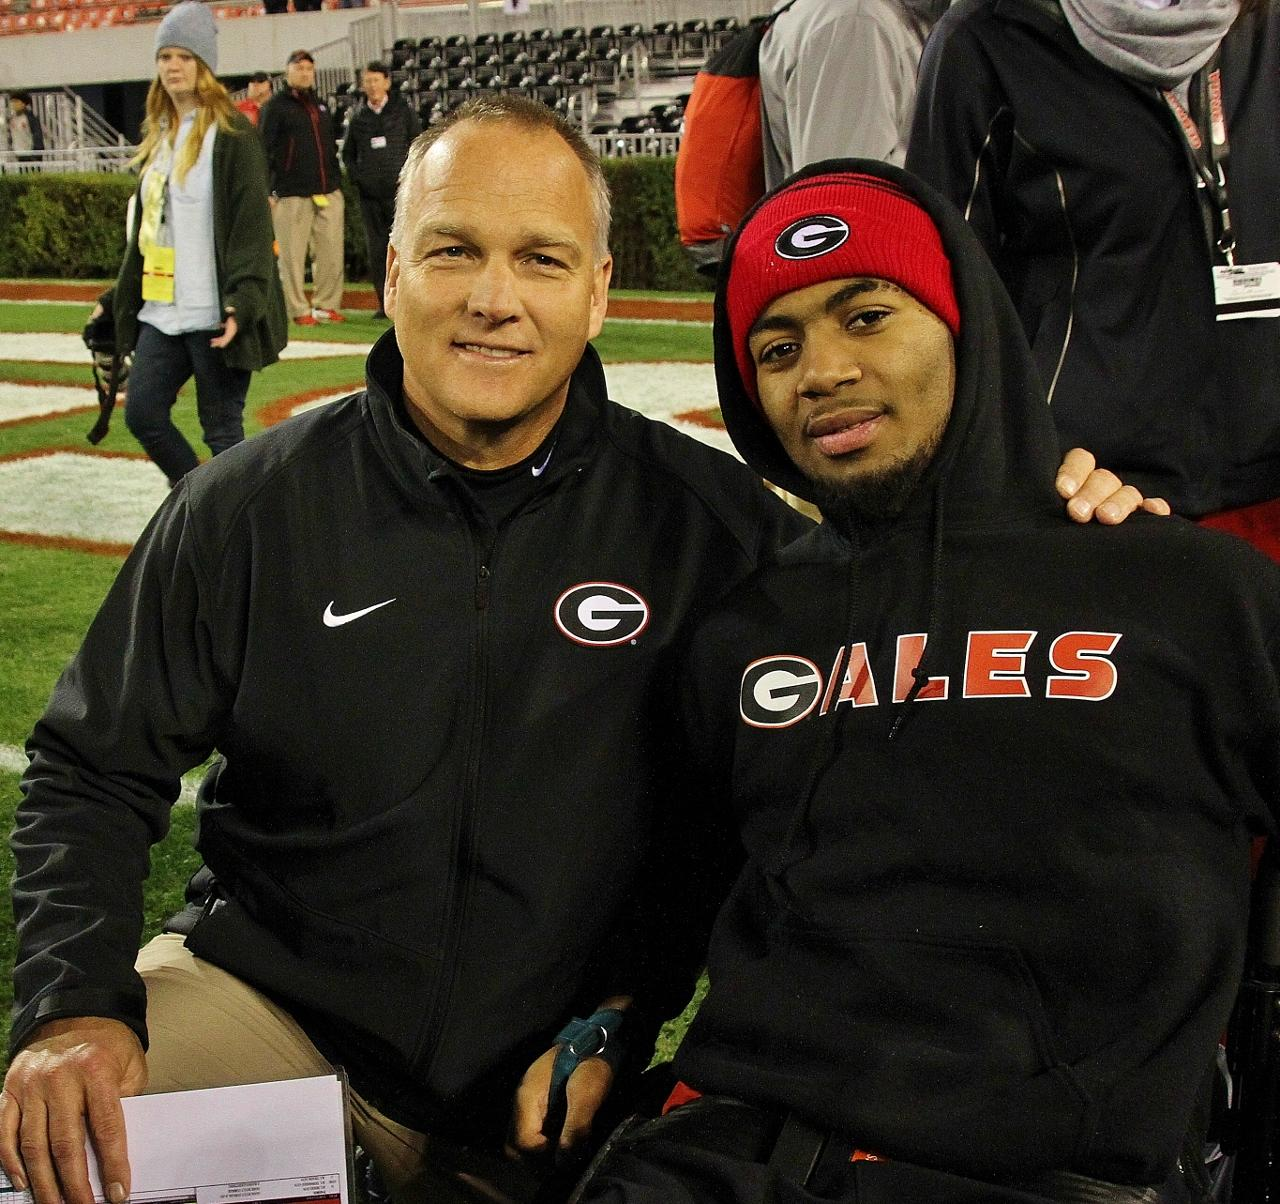 CMR with Devon Gales at GA Southern vs. Georgia game 21-Nov-2015 (Photo by Rob Saye)